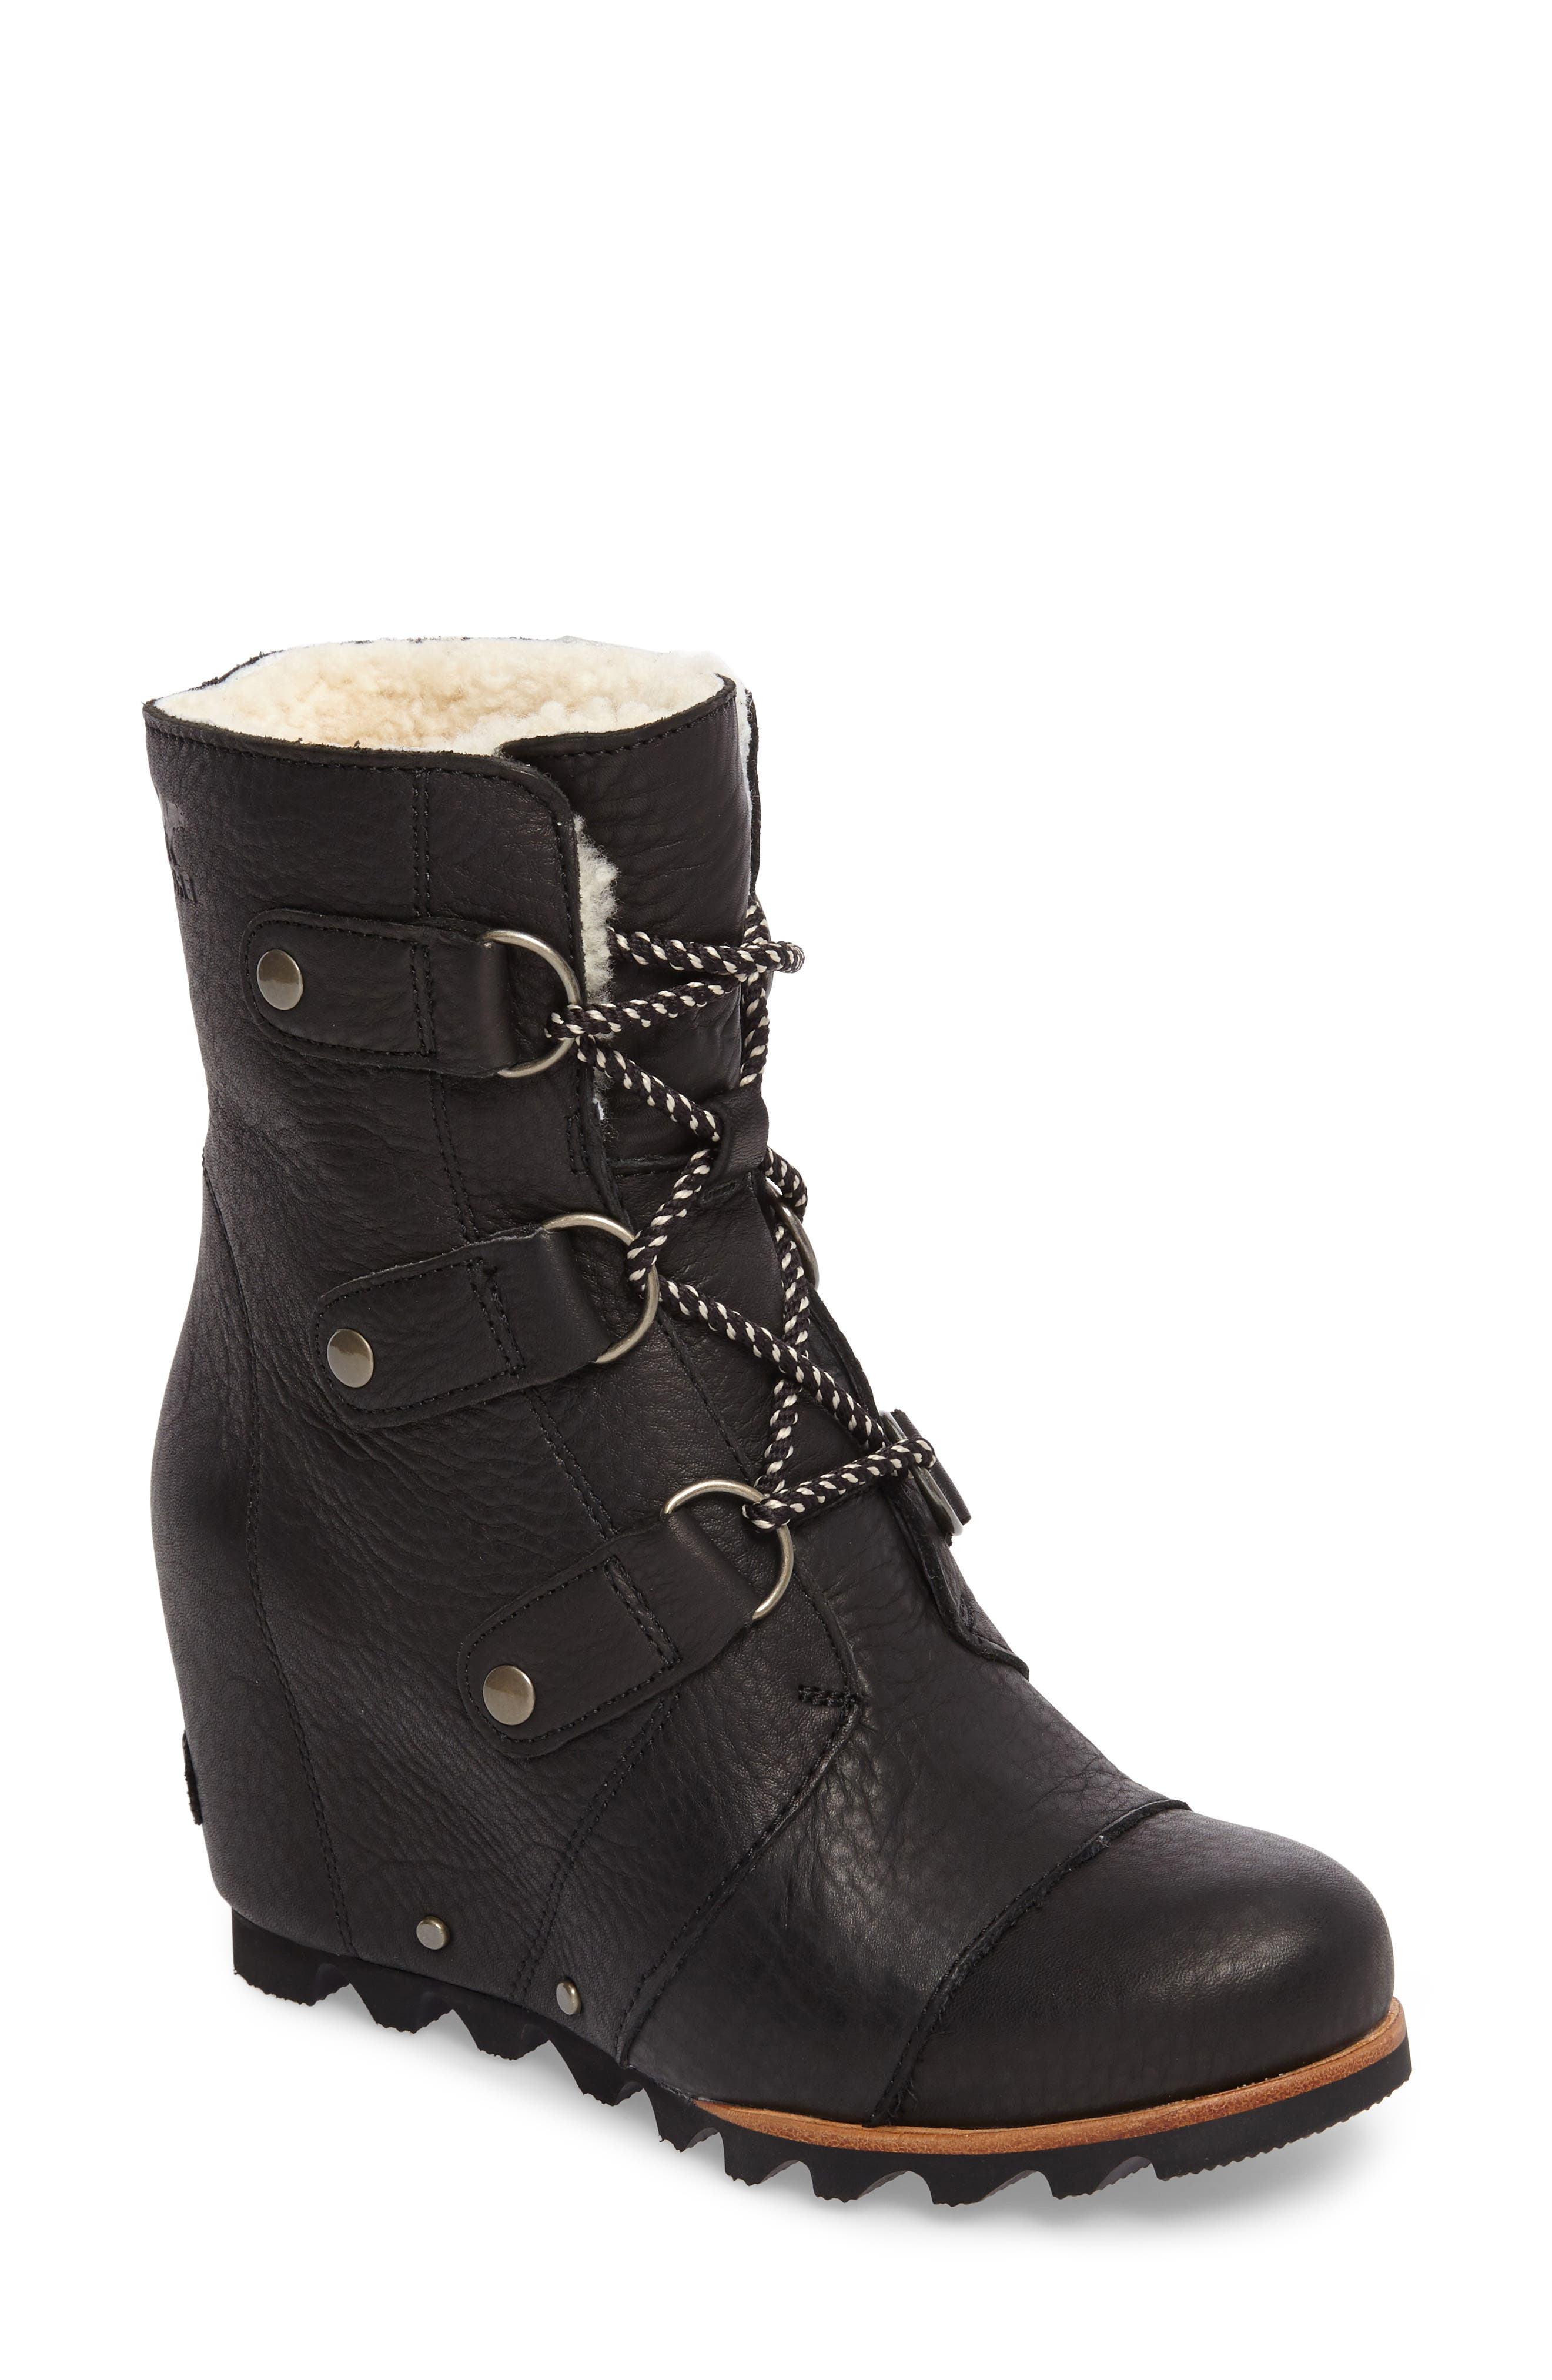 Joan of Arctic Wedge Genuine Shearling Bootie,                         Main,                         color, Black/ Ancient